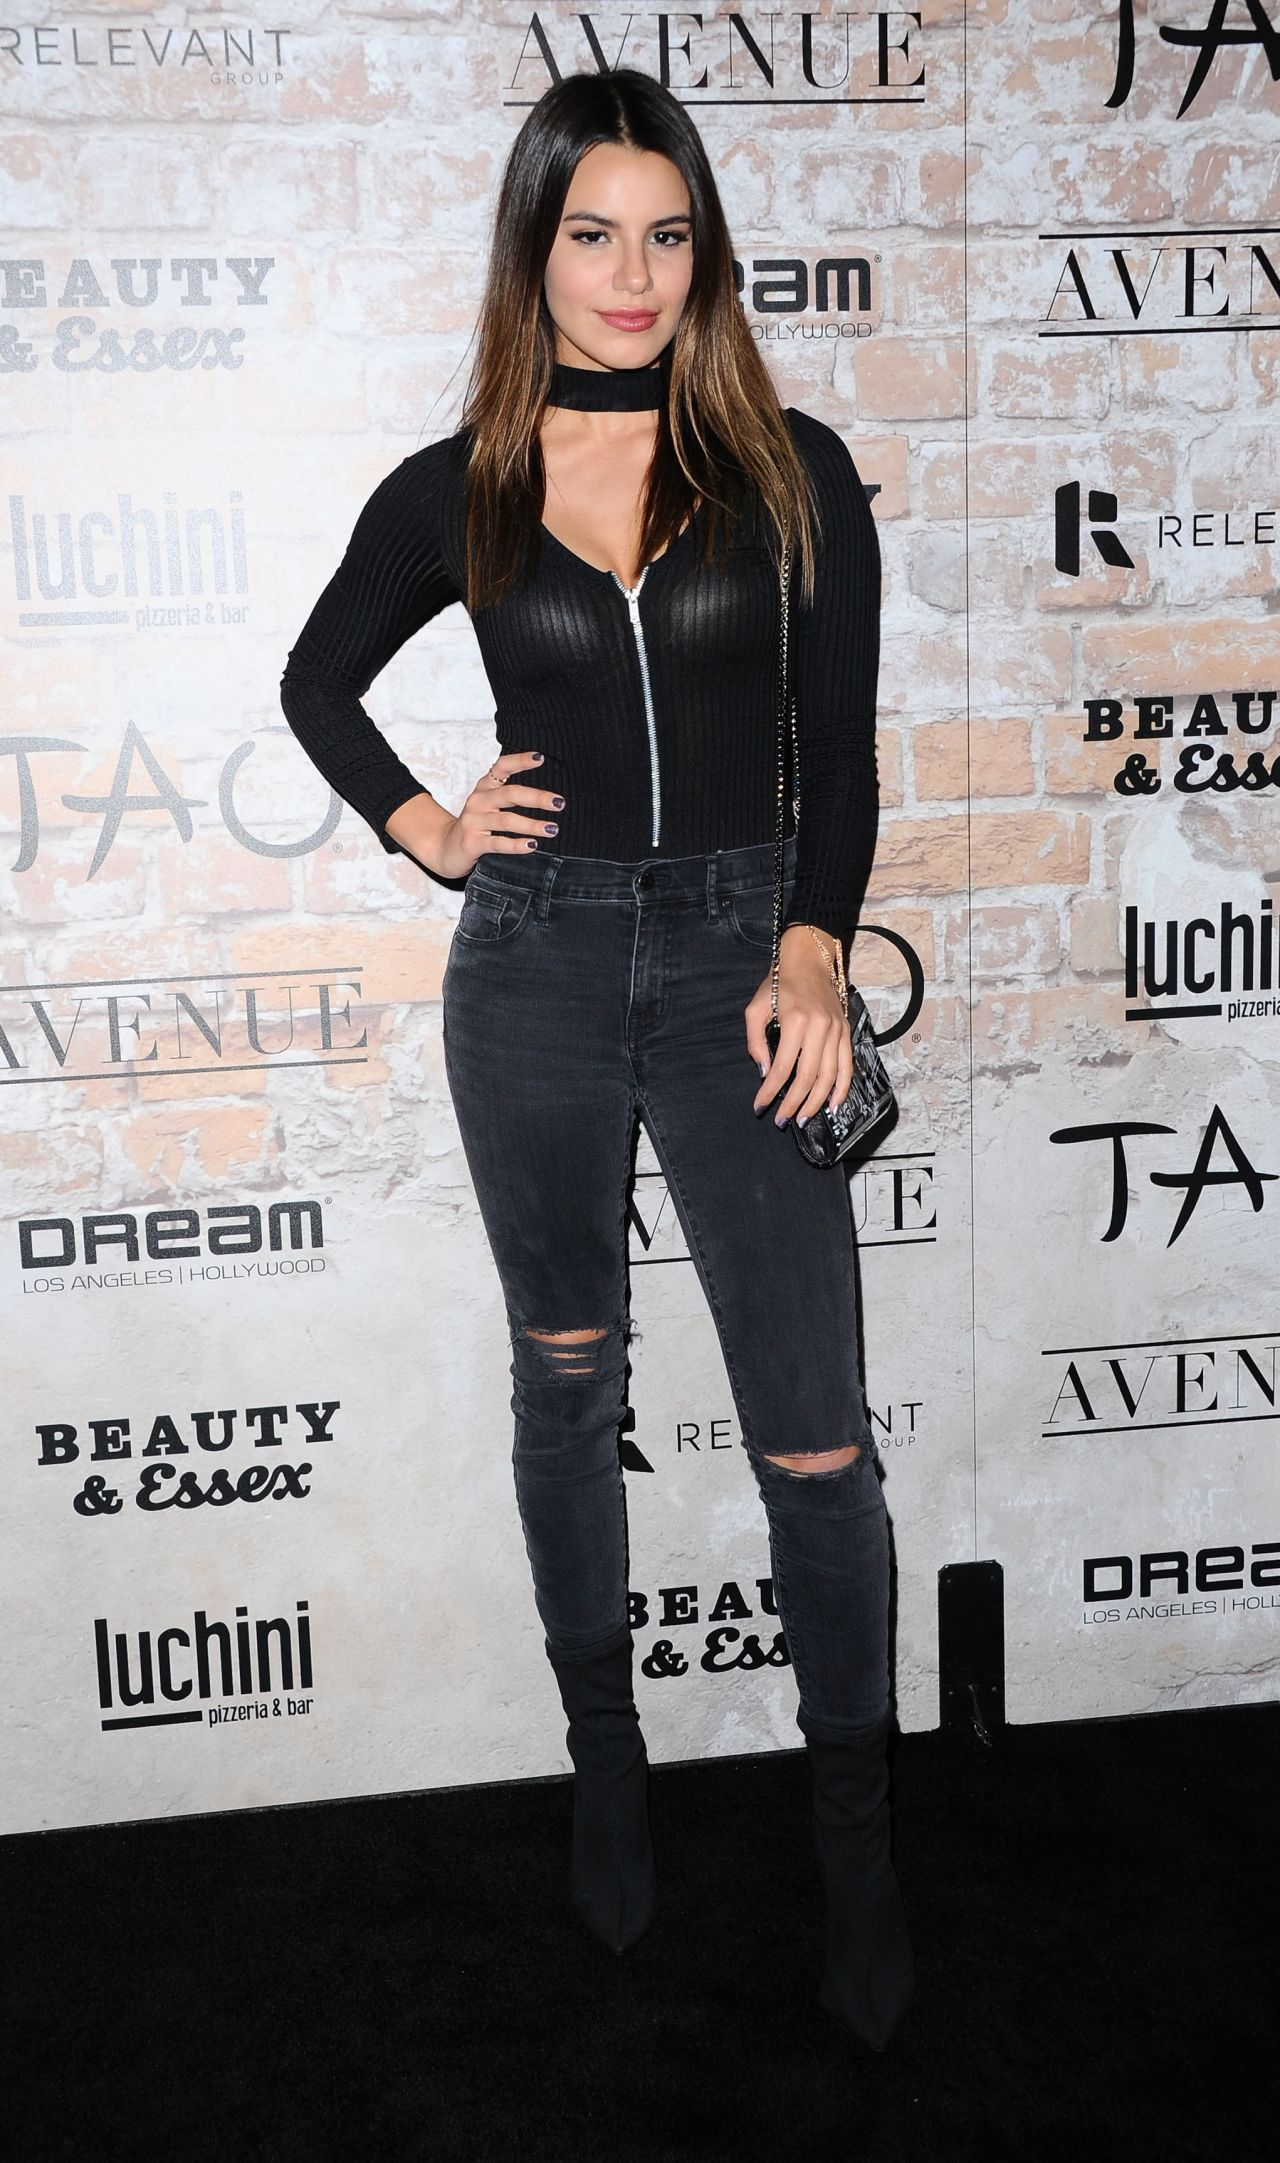 Madison reed tao beauty essex avenue luchini la grand opening